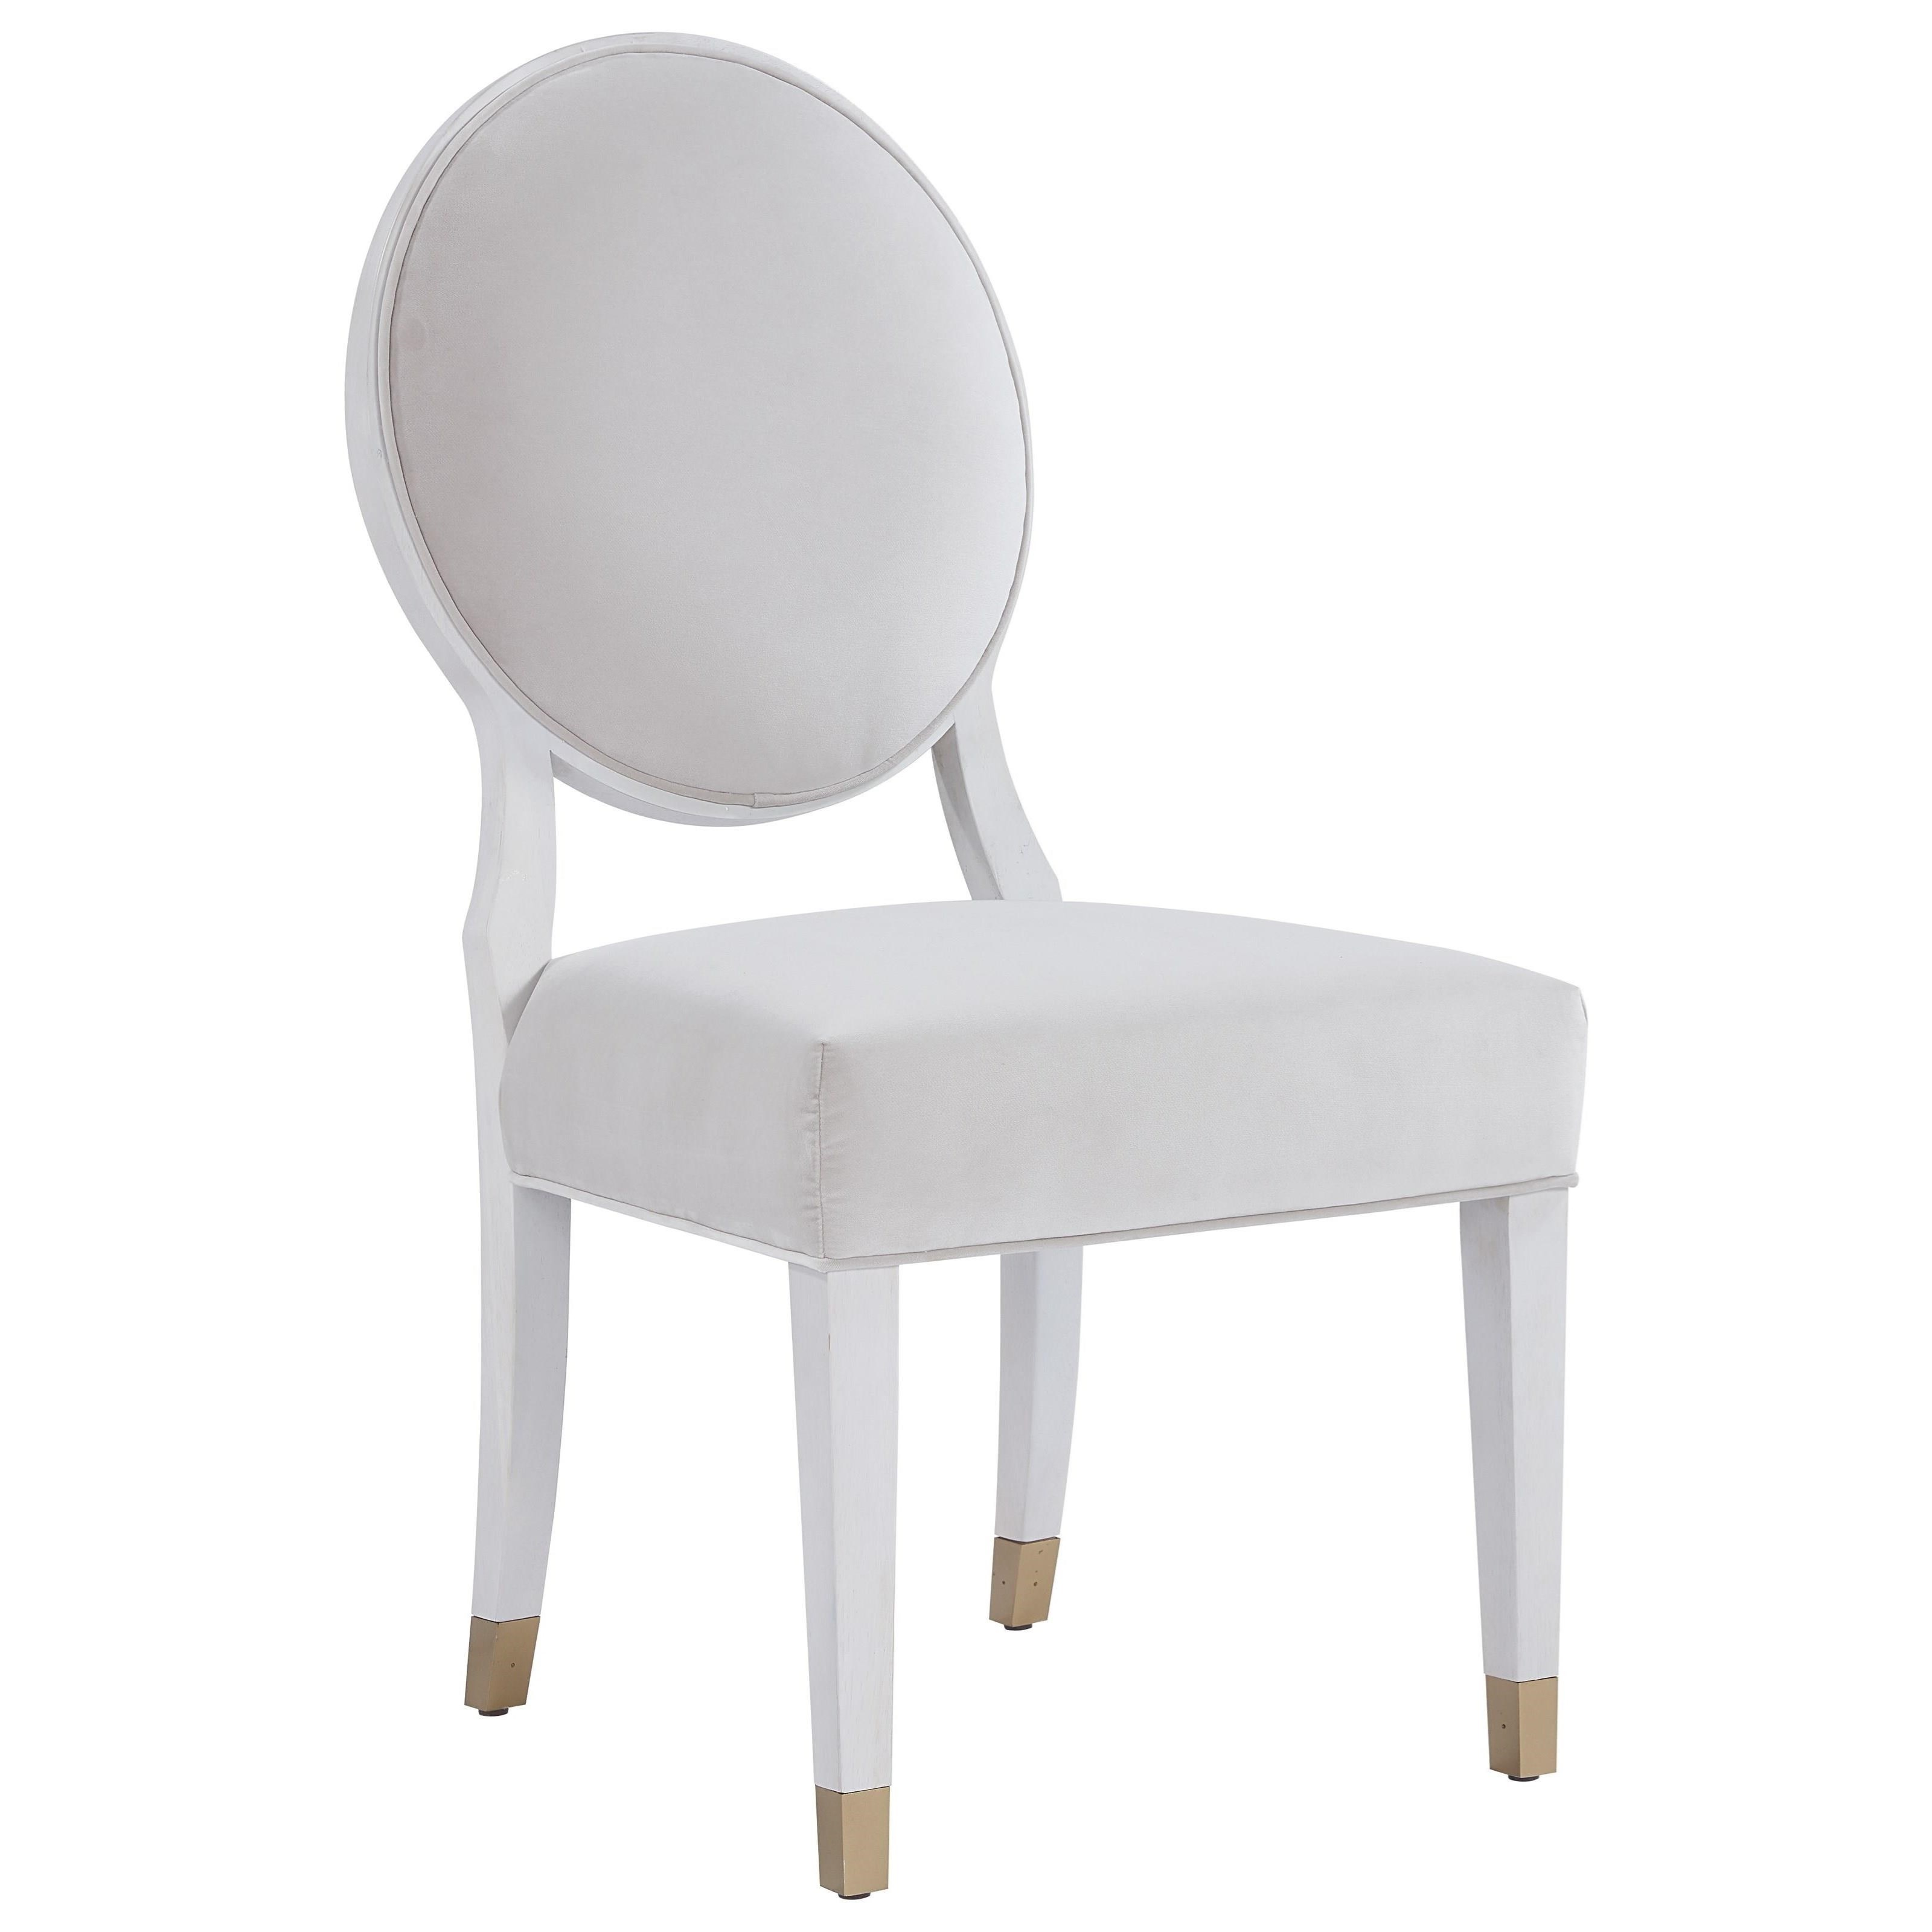 Love. Joy. Bliss.-Miranda Kerr Home Oval Back Side Chair by Universal at Baer's Furniture